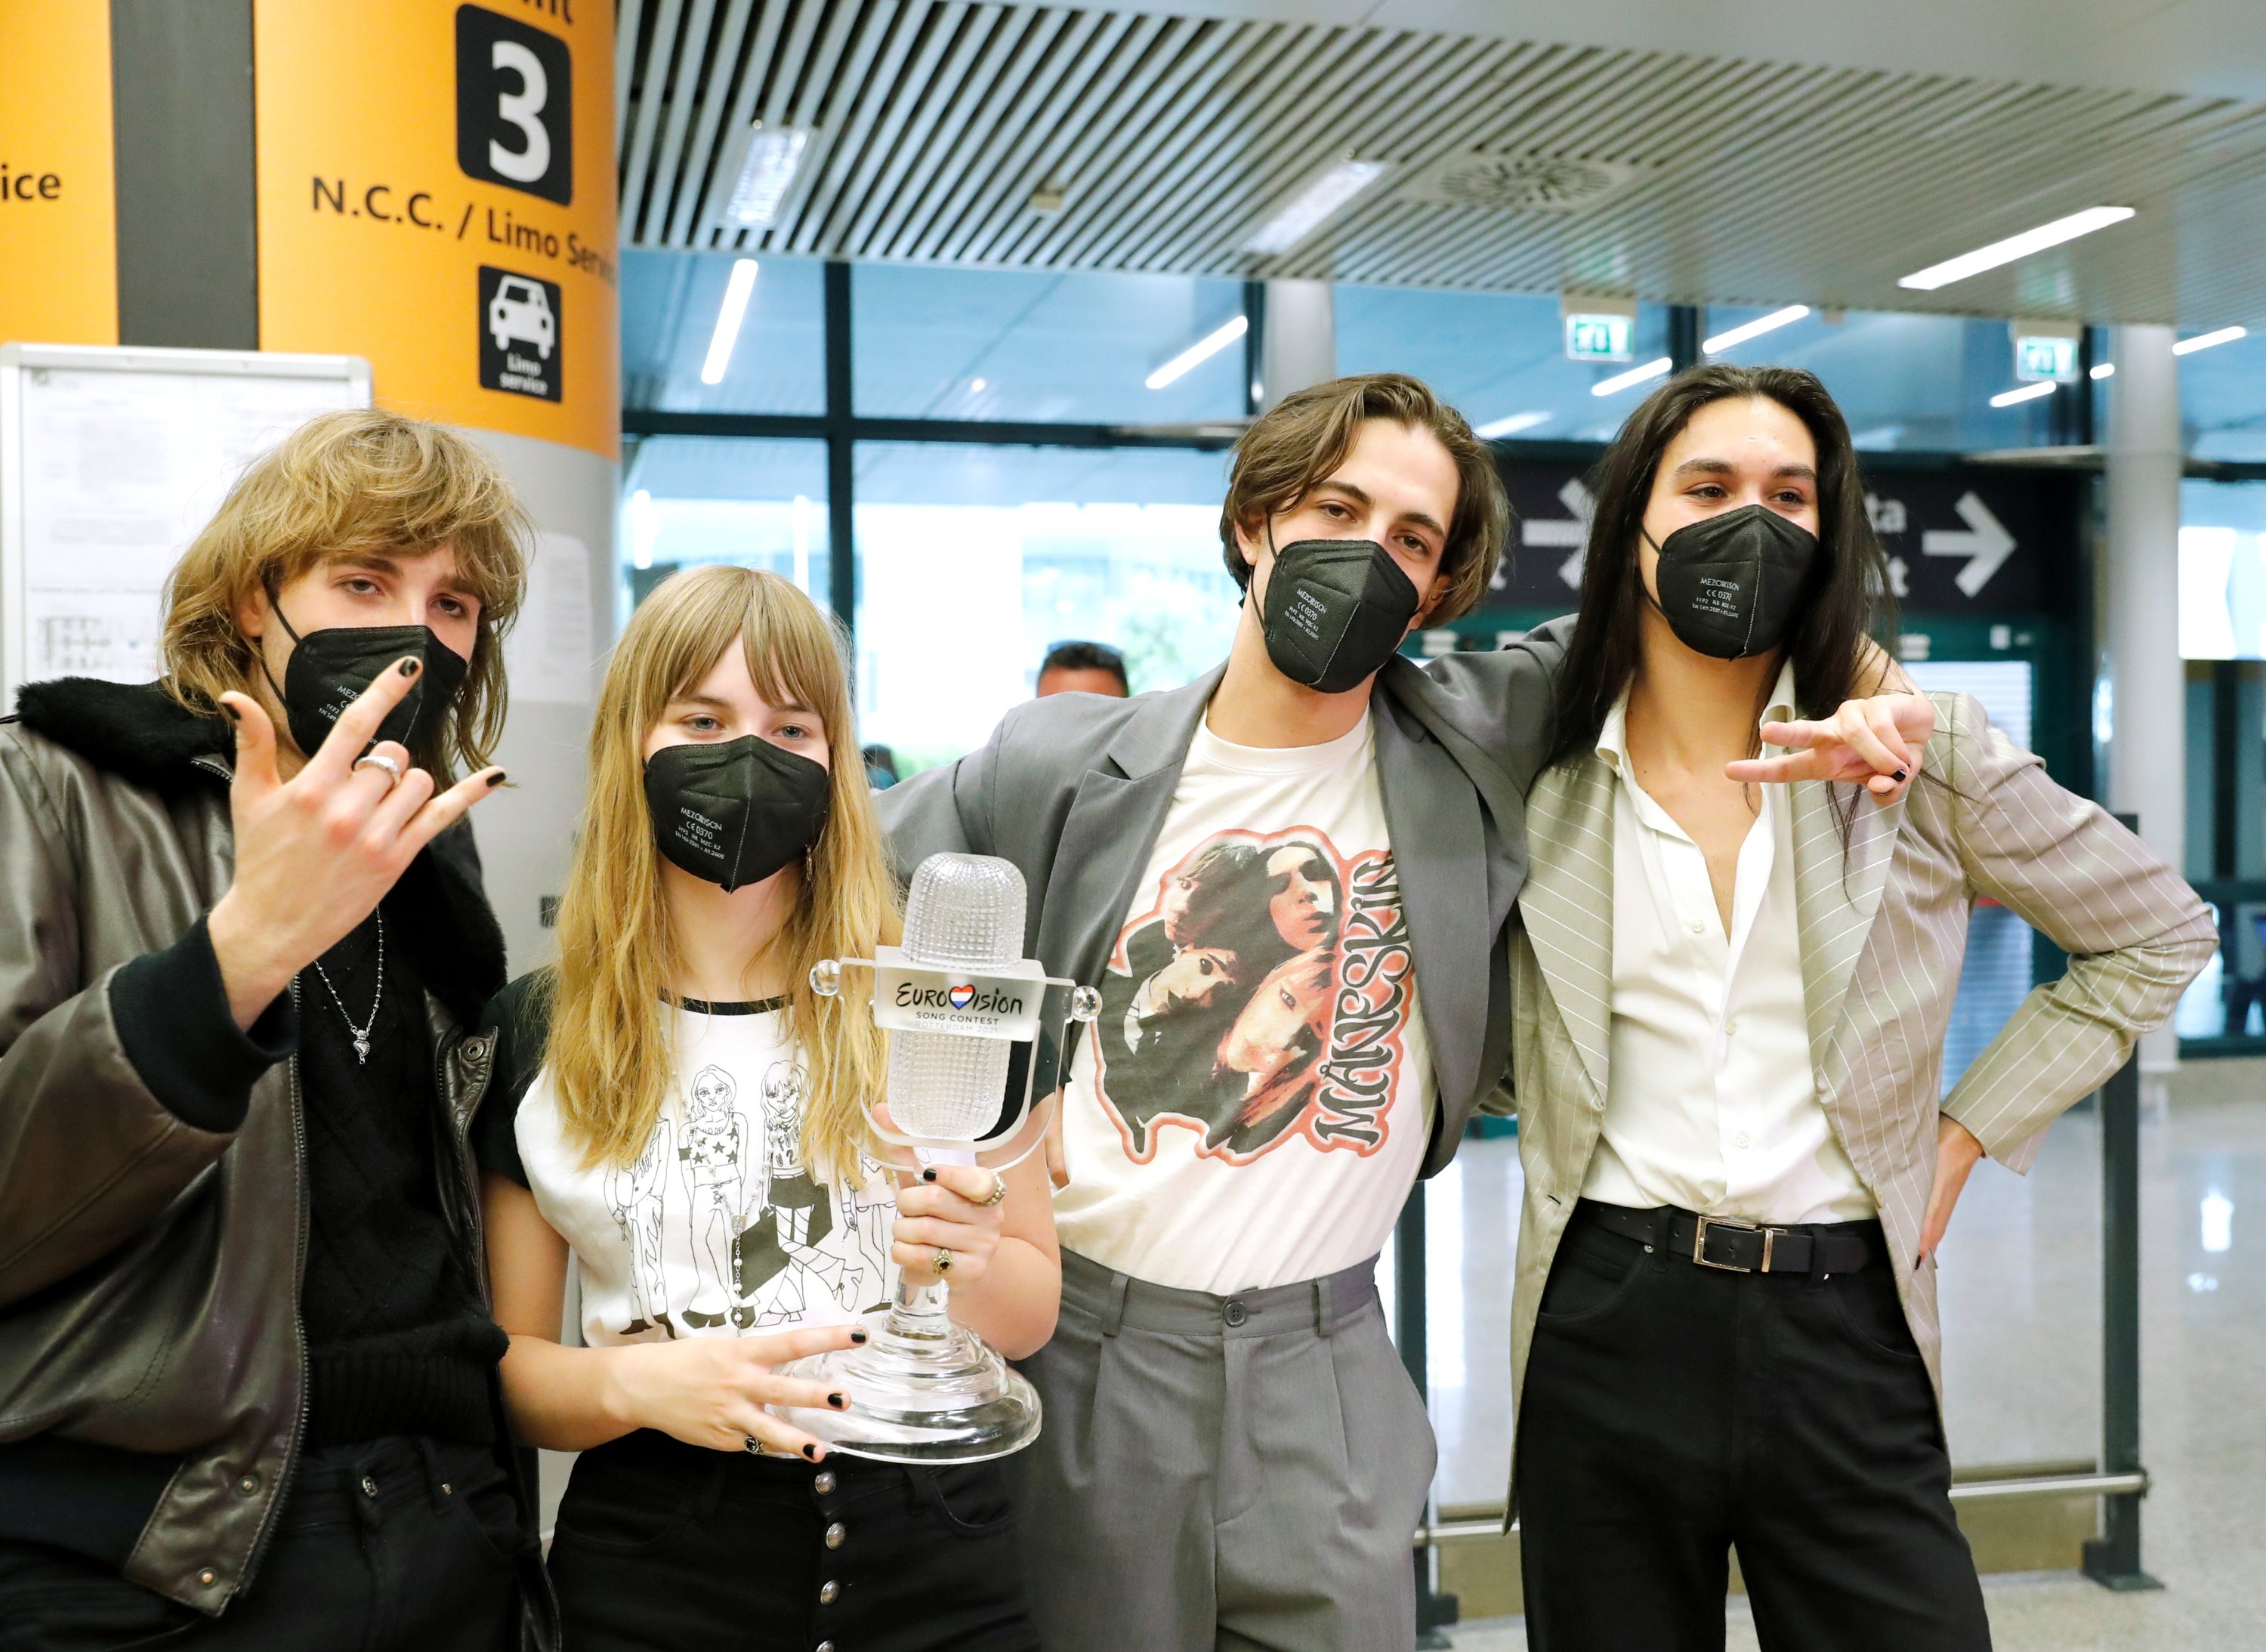 Members of Italian rock band Maneskin pose for a picture as they return to Italy following their 2021 Eurovision Song Contest victory, in Rome, Italy, May 23, 2021. (REUTERS Photo)